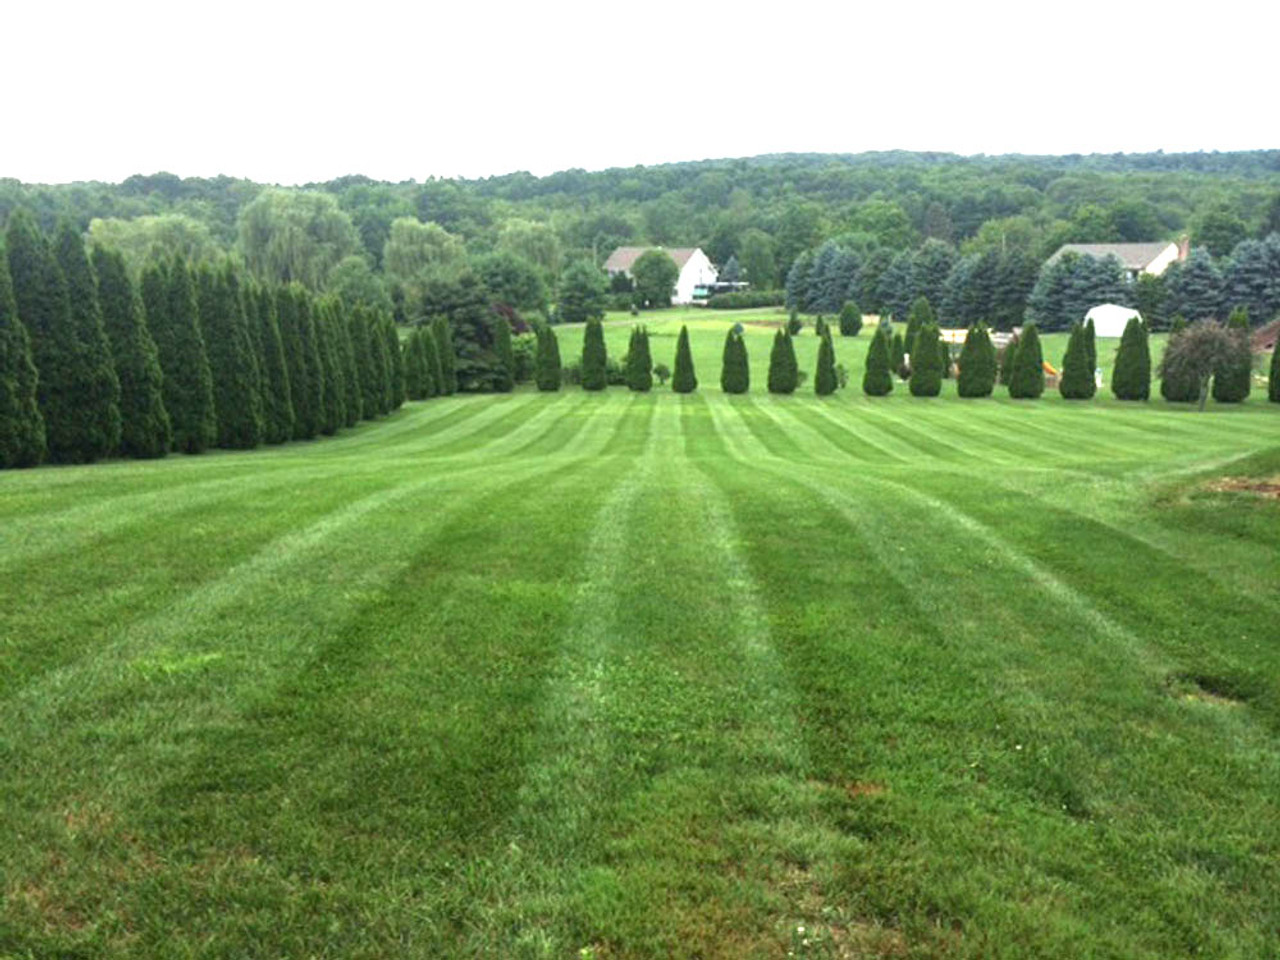 After mowing with turf striper installed (Customer supplied photo)